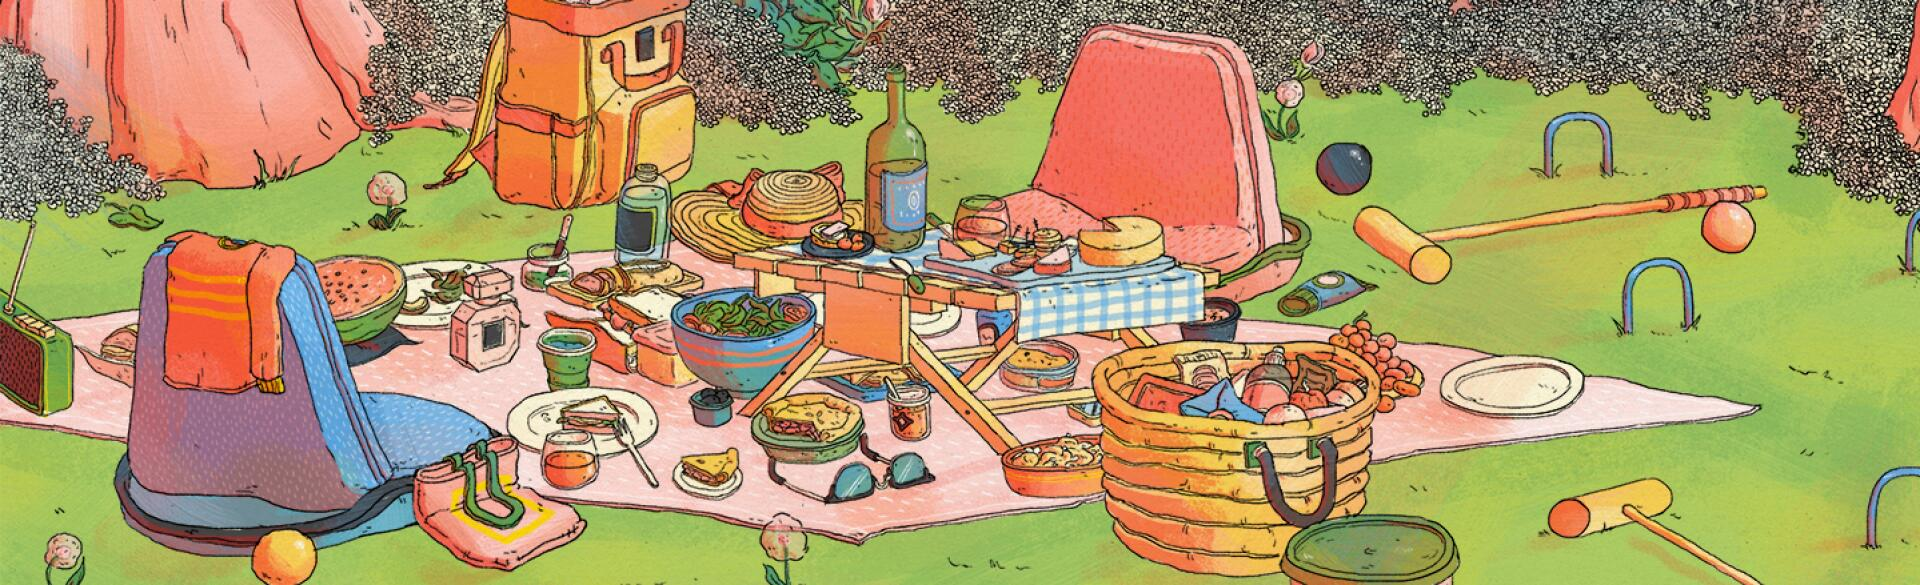 illustration_of_a_picnic_in_a_park_by_meredith_miotke_1440x584.jpg